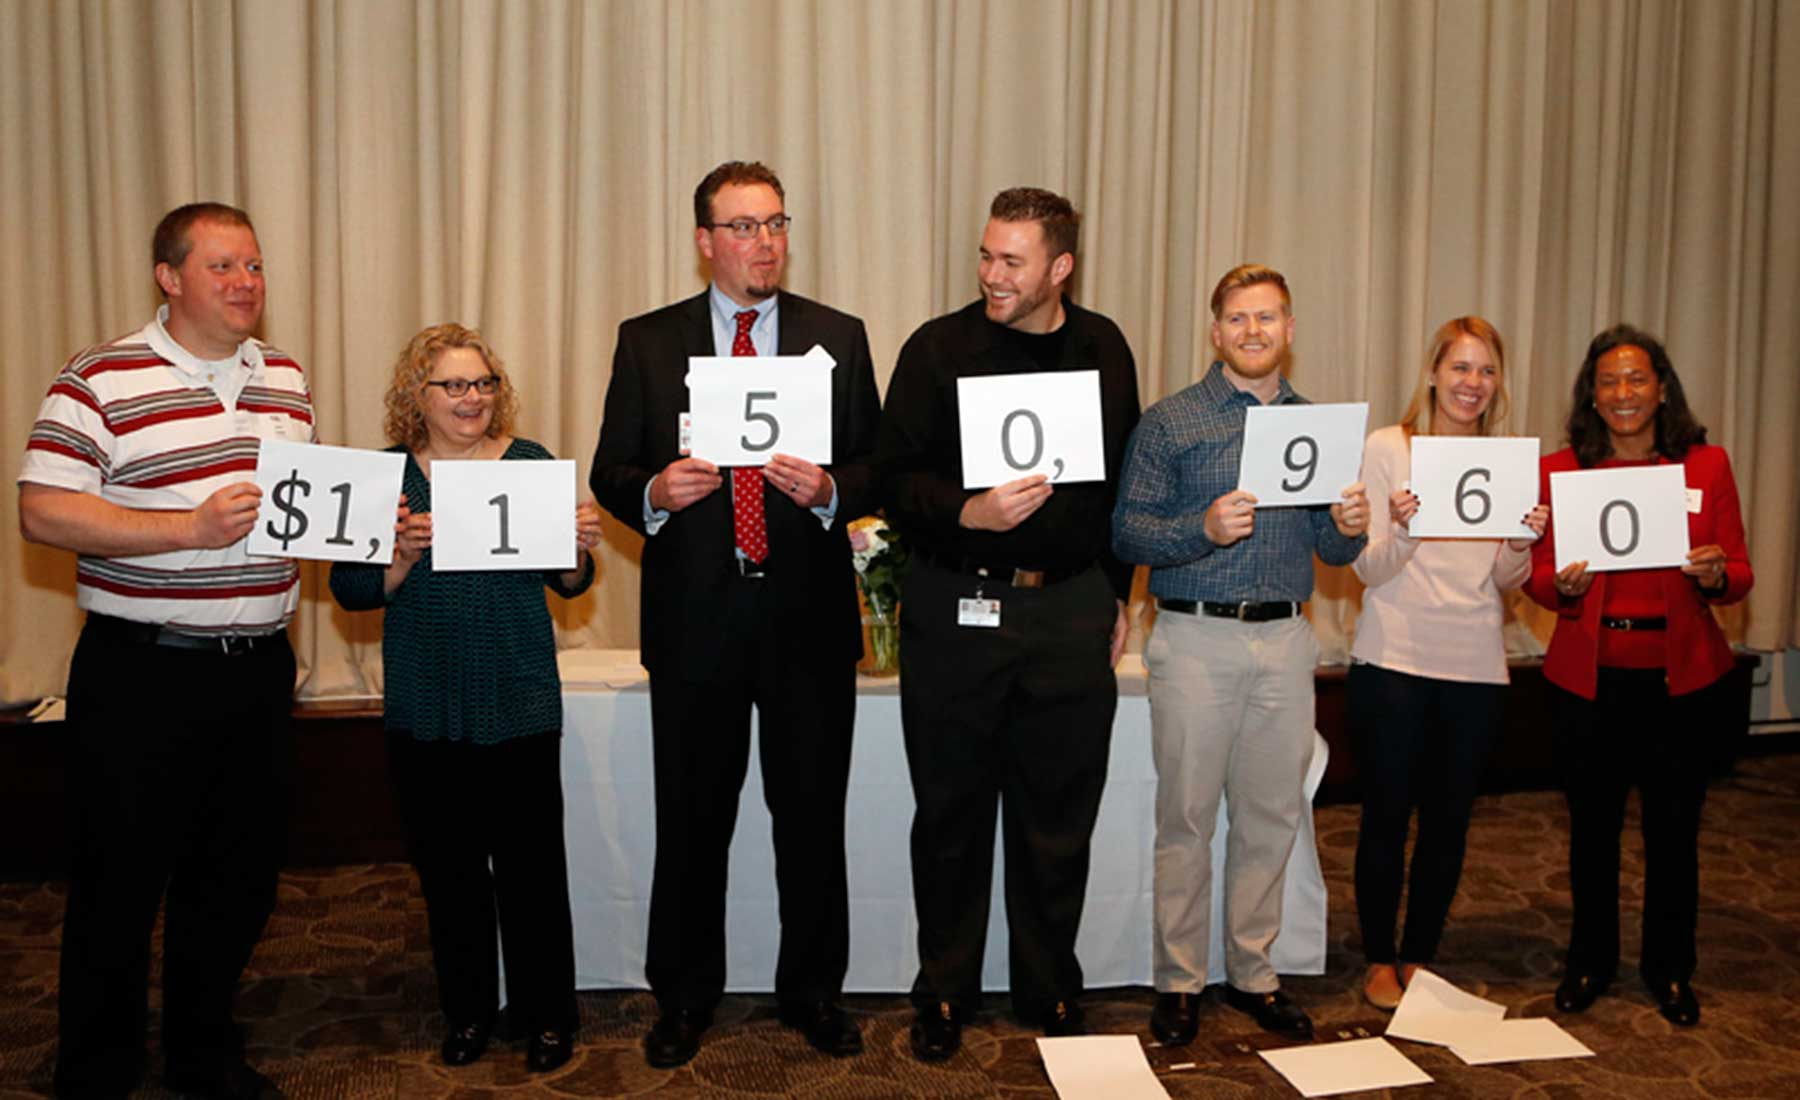 committee members reveal the total for the 2015 Bucks for Charity campaign